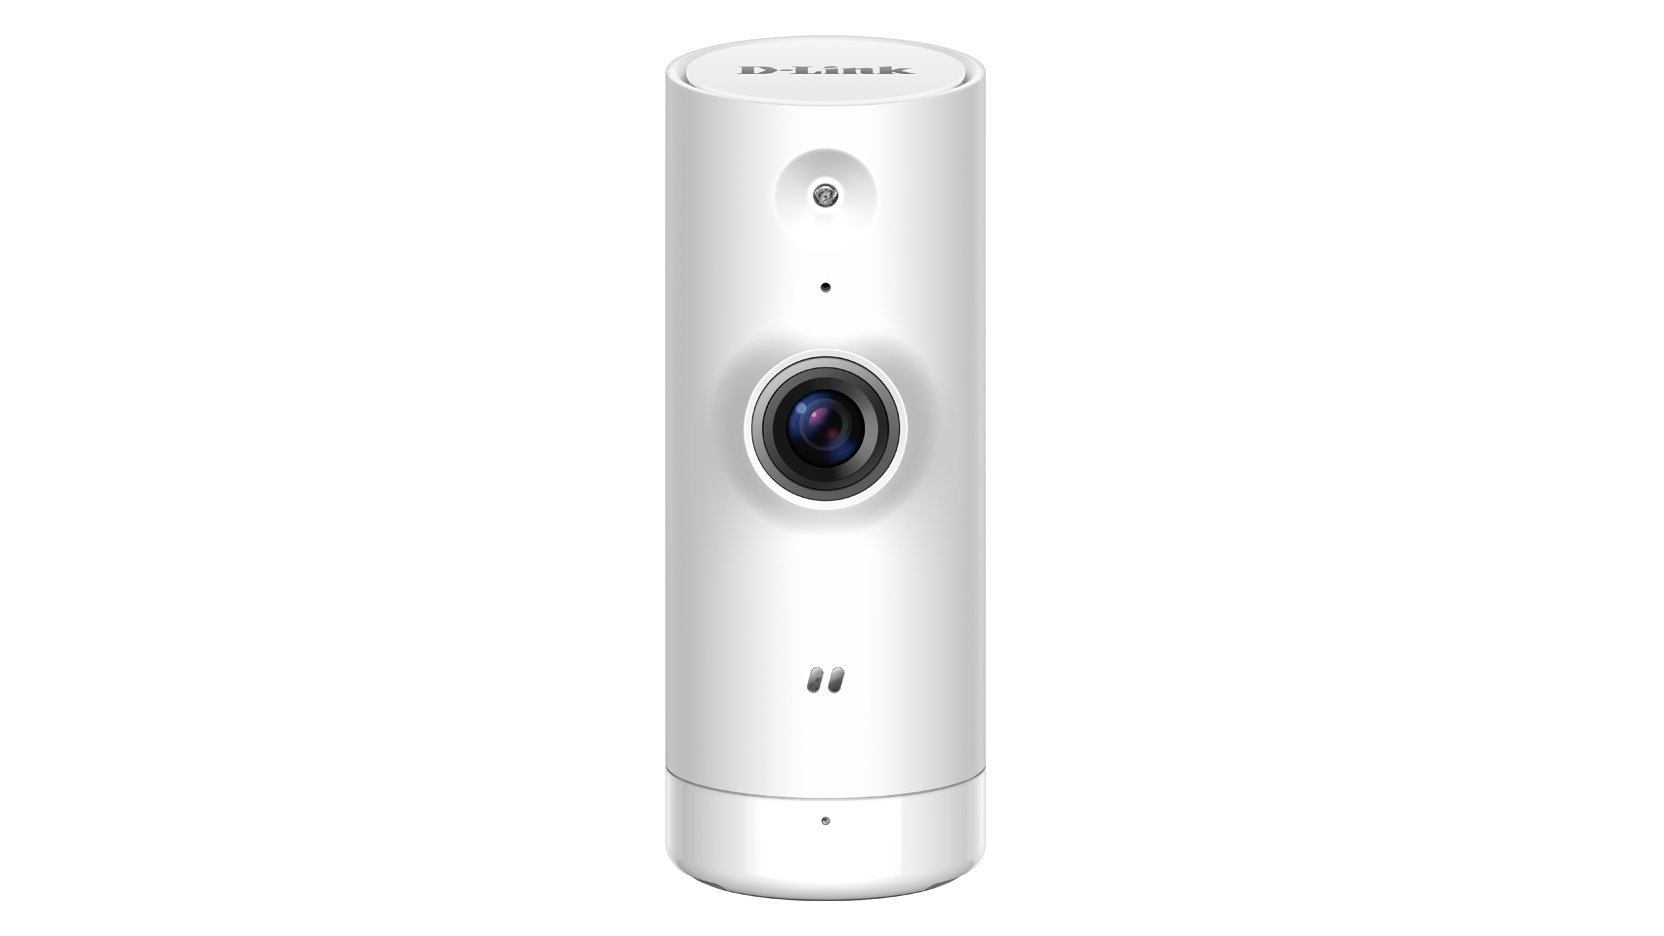 D-Link Mini HD Wi-Fi Camera – HD Resolution – Night Vision – Remote Access – Indoor – White (DCS-8000LH) by D-Link